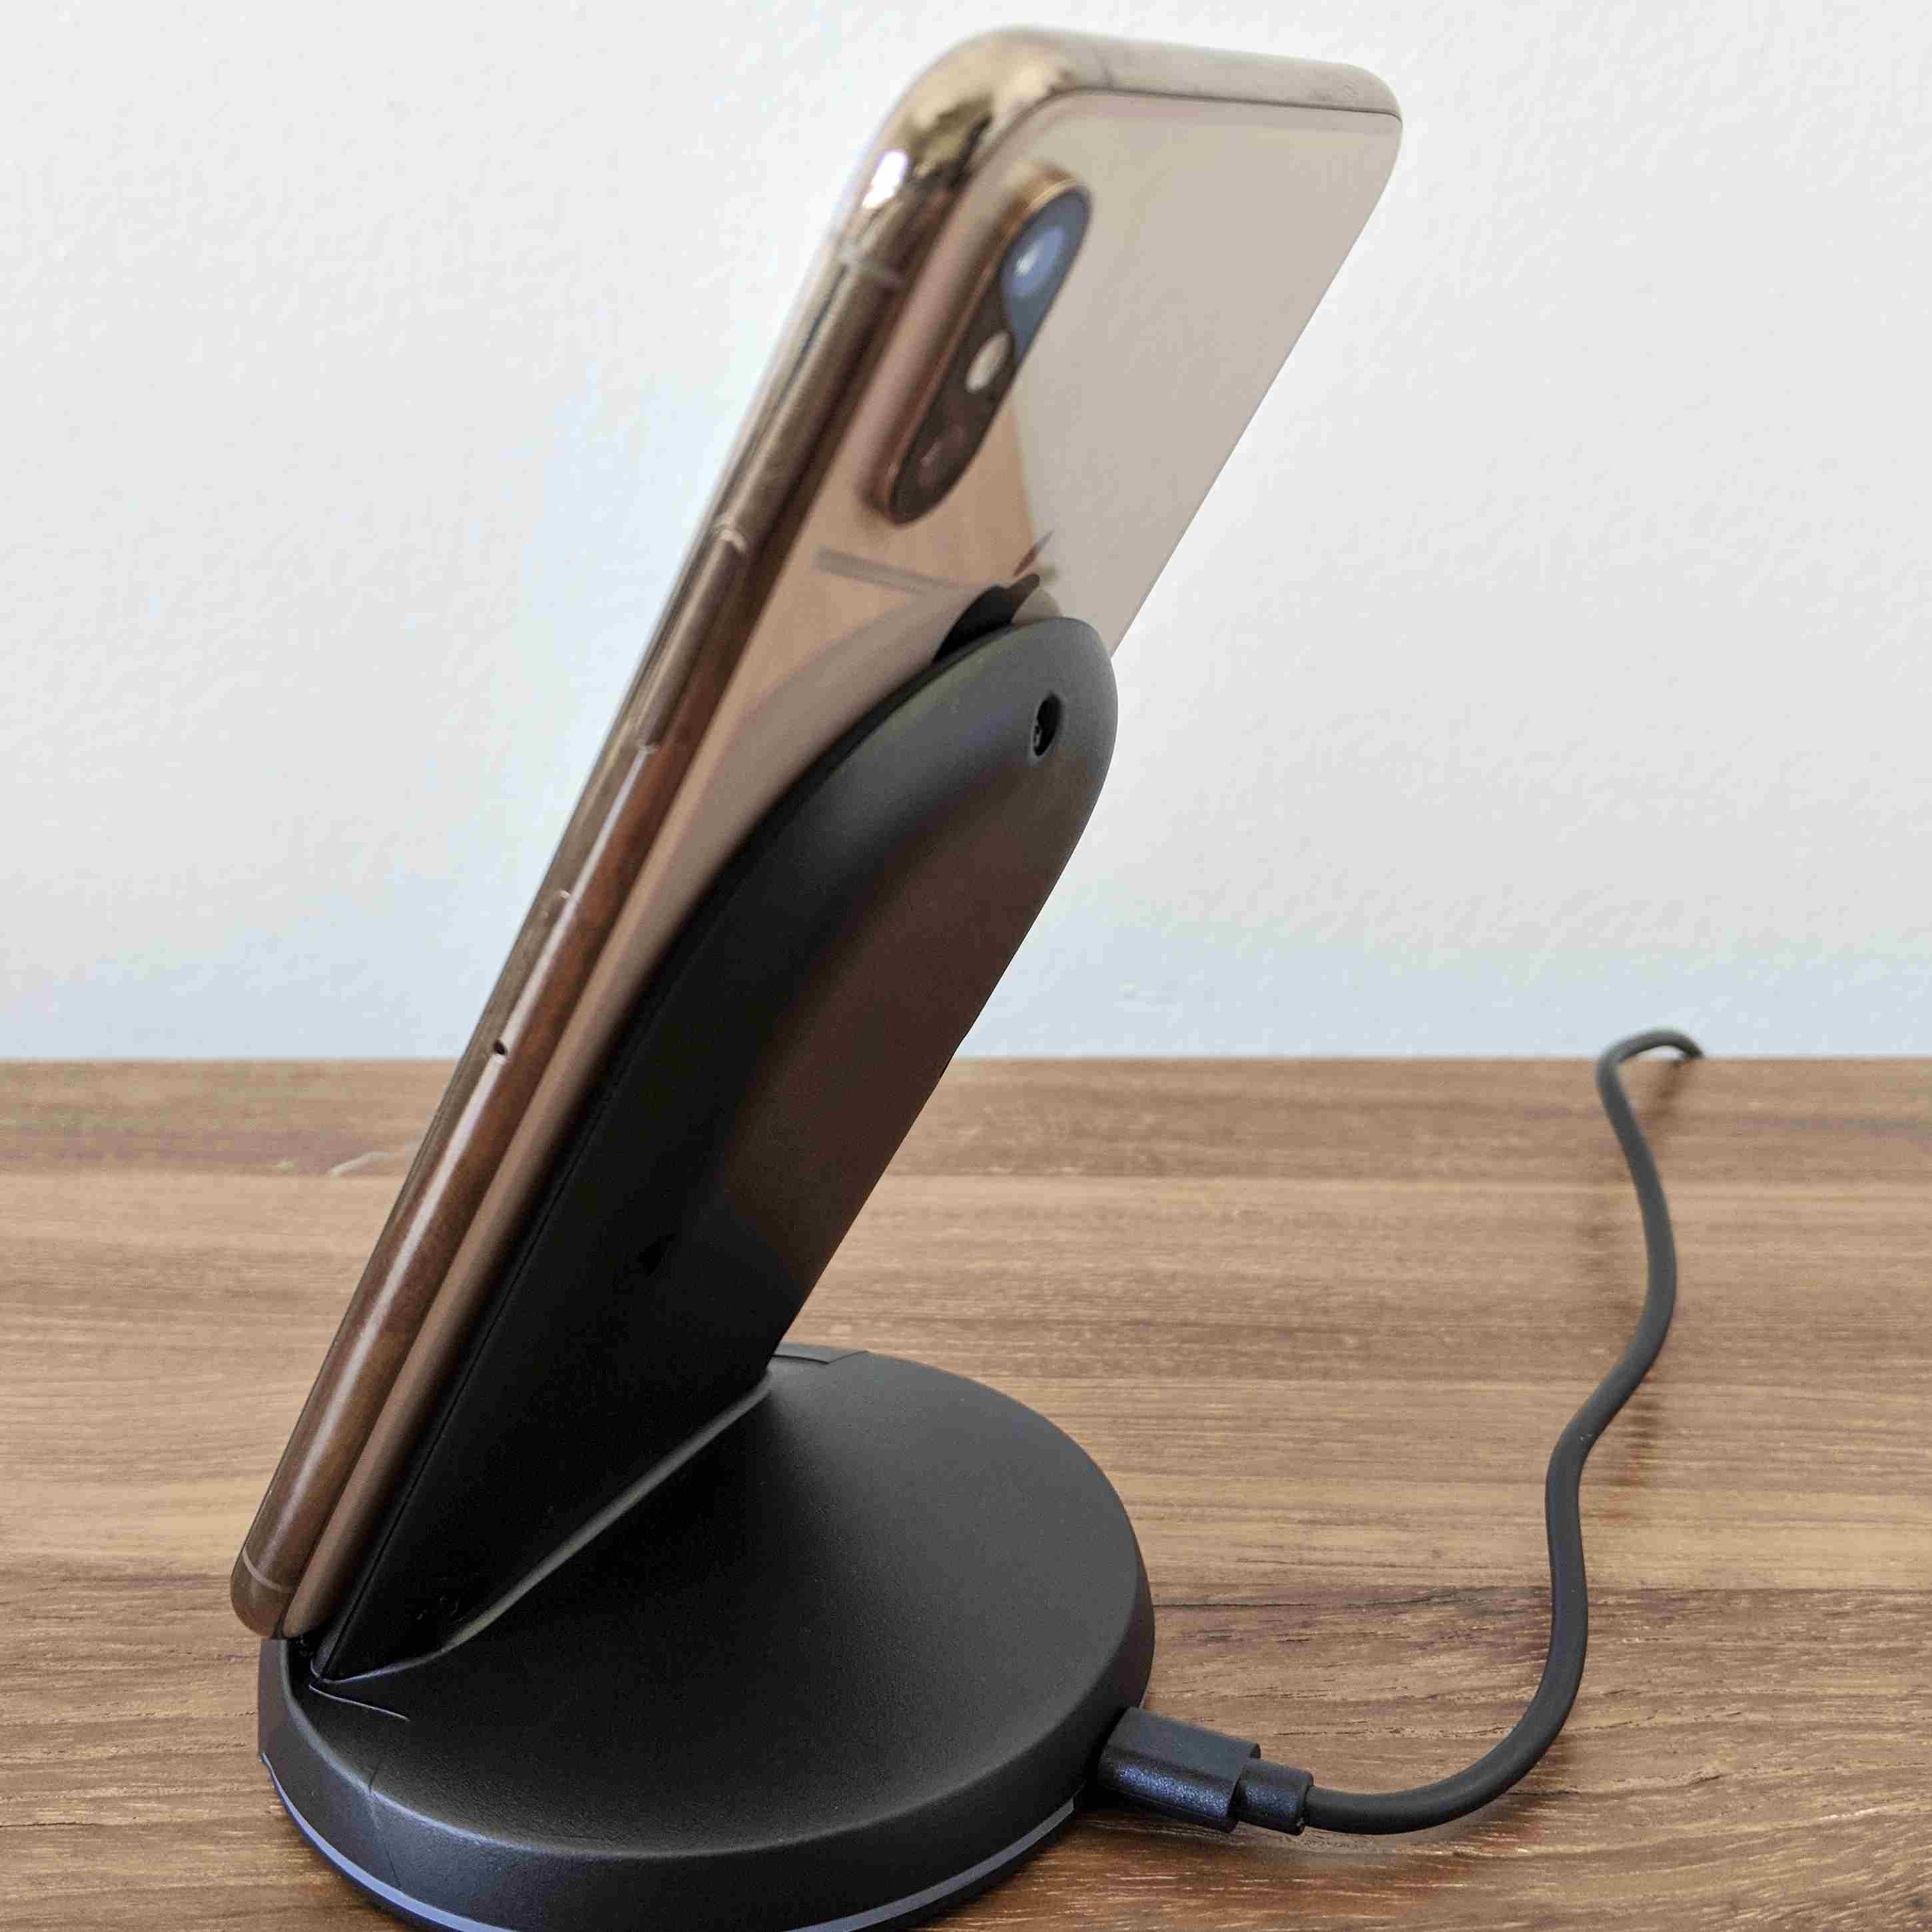 Yootech Wireless Charger Stand